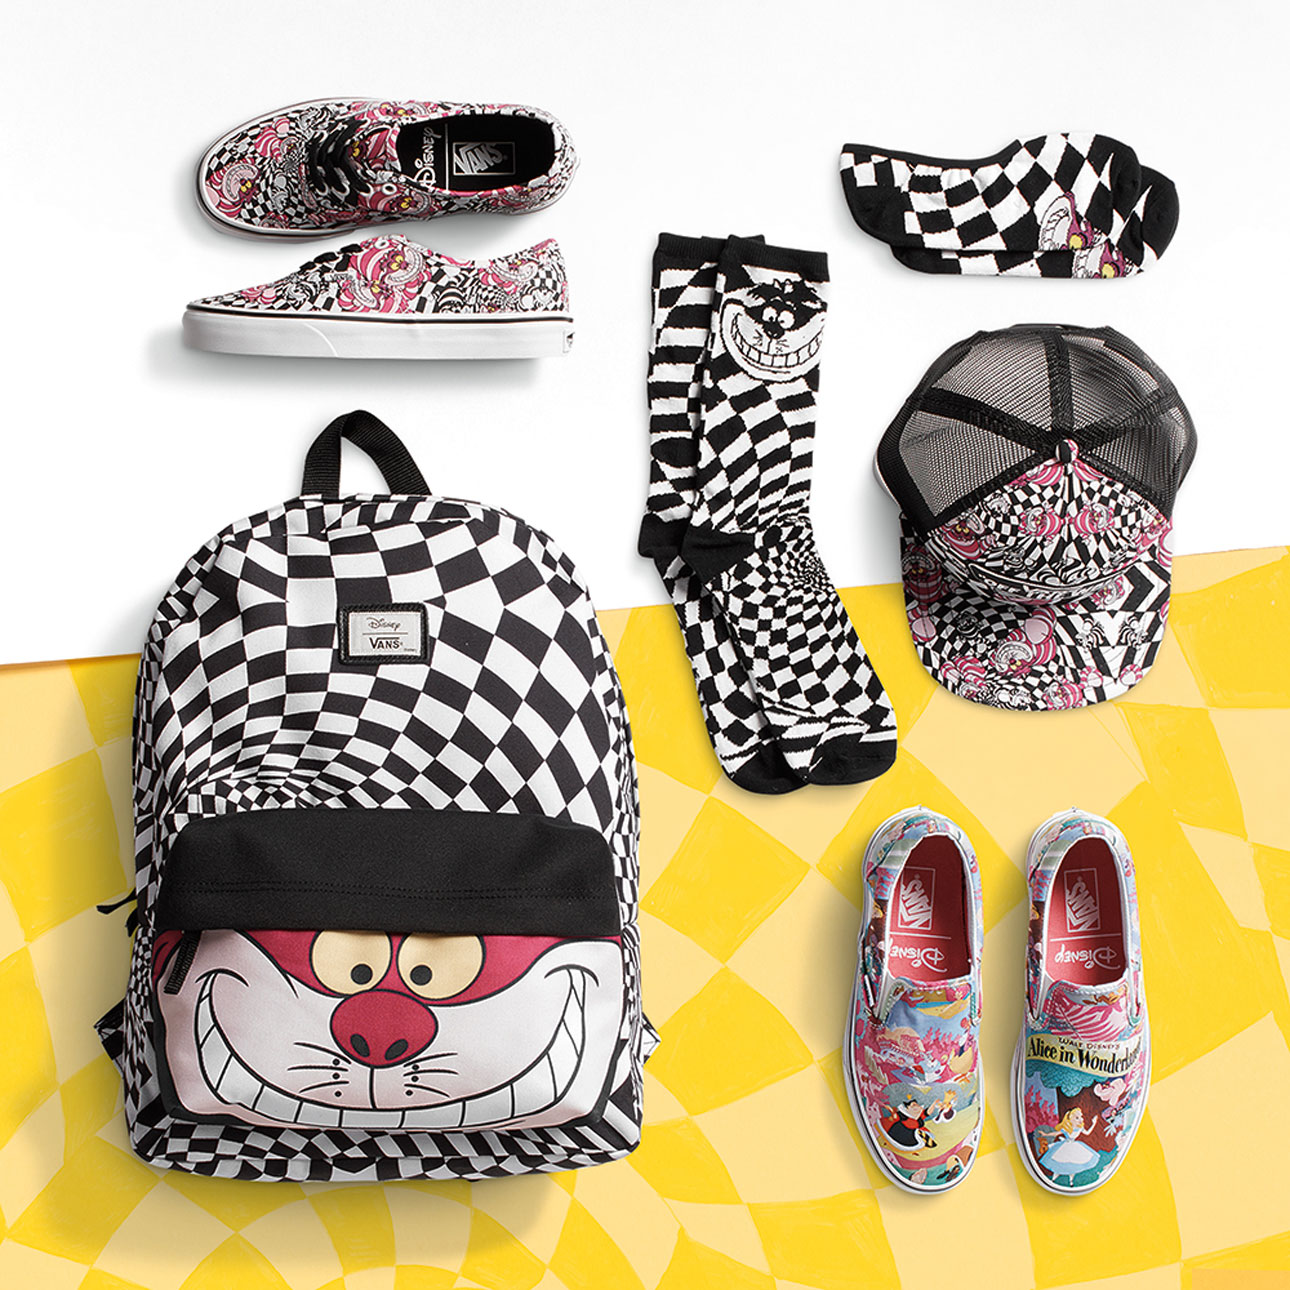 Vans Disney Alice in Wonderland